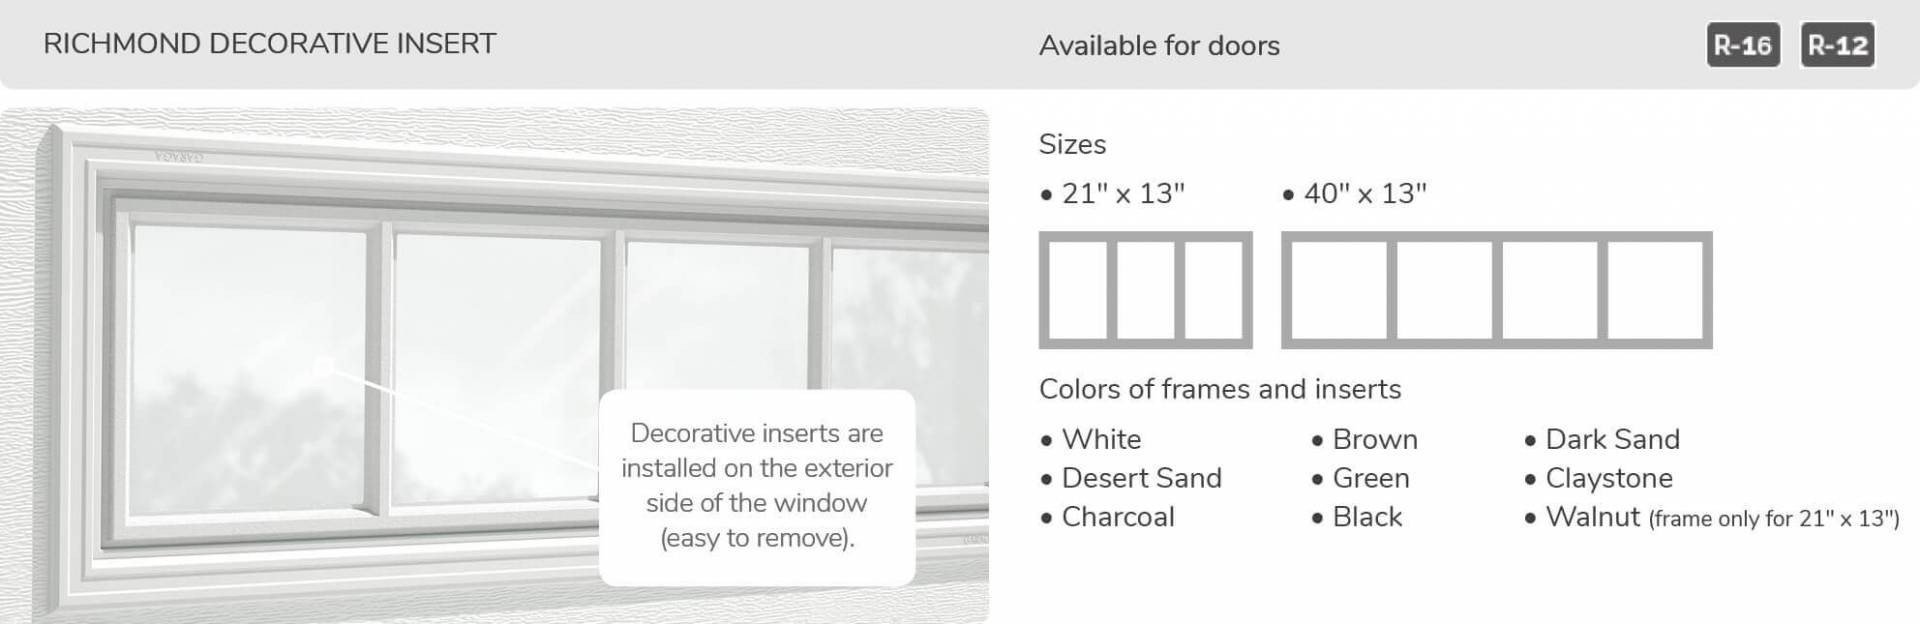 Richmond Decorative Insert, 21' x 13' and 40' x 13', available for door R-16 and R-12